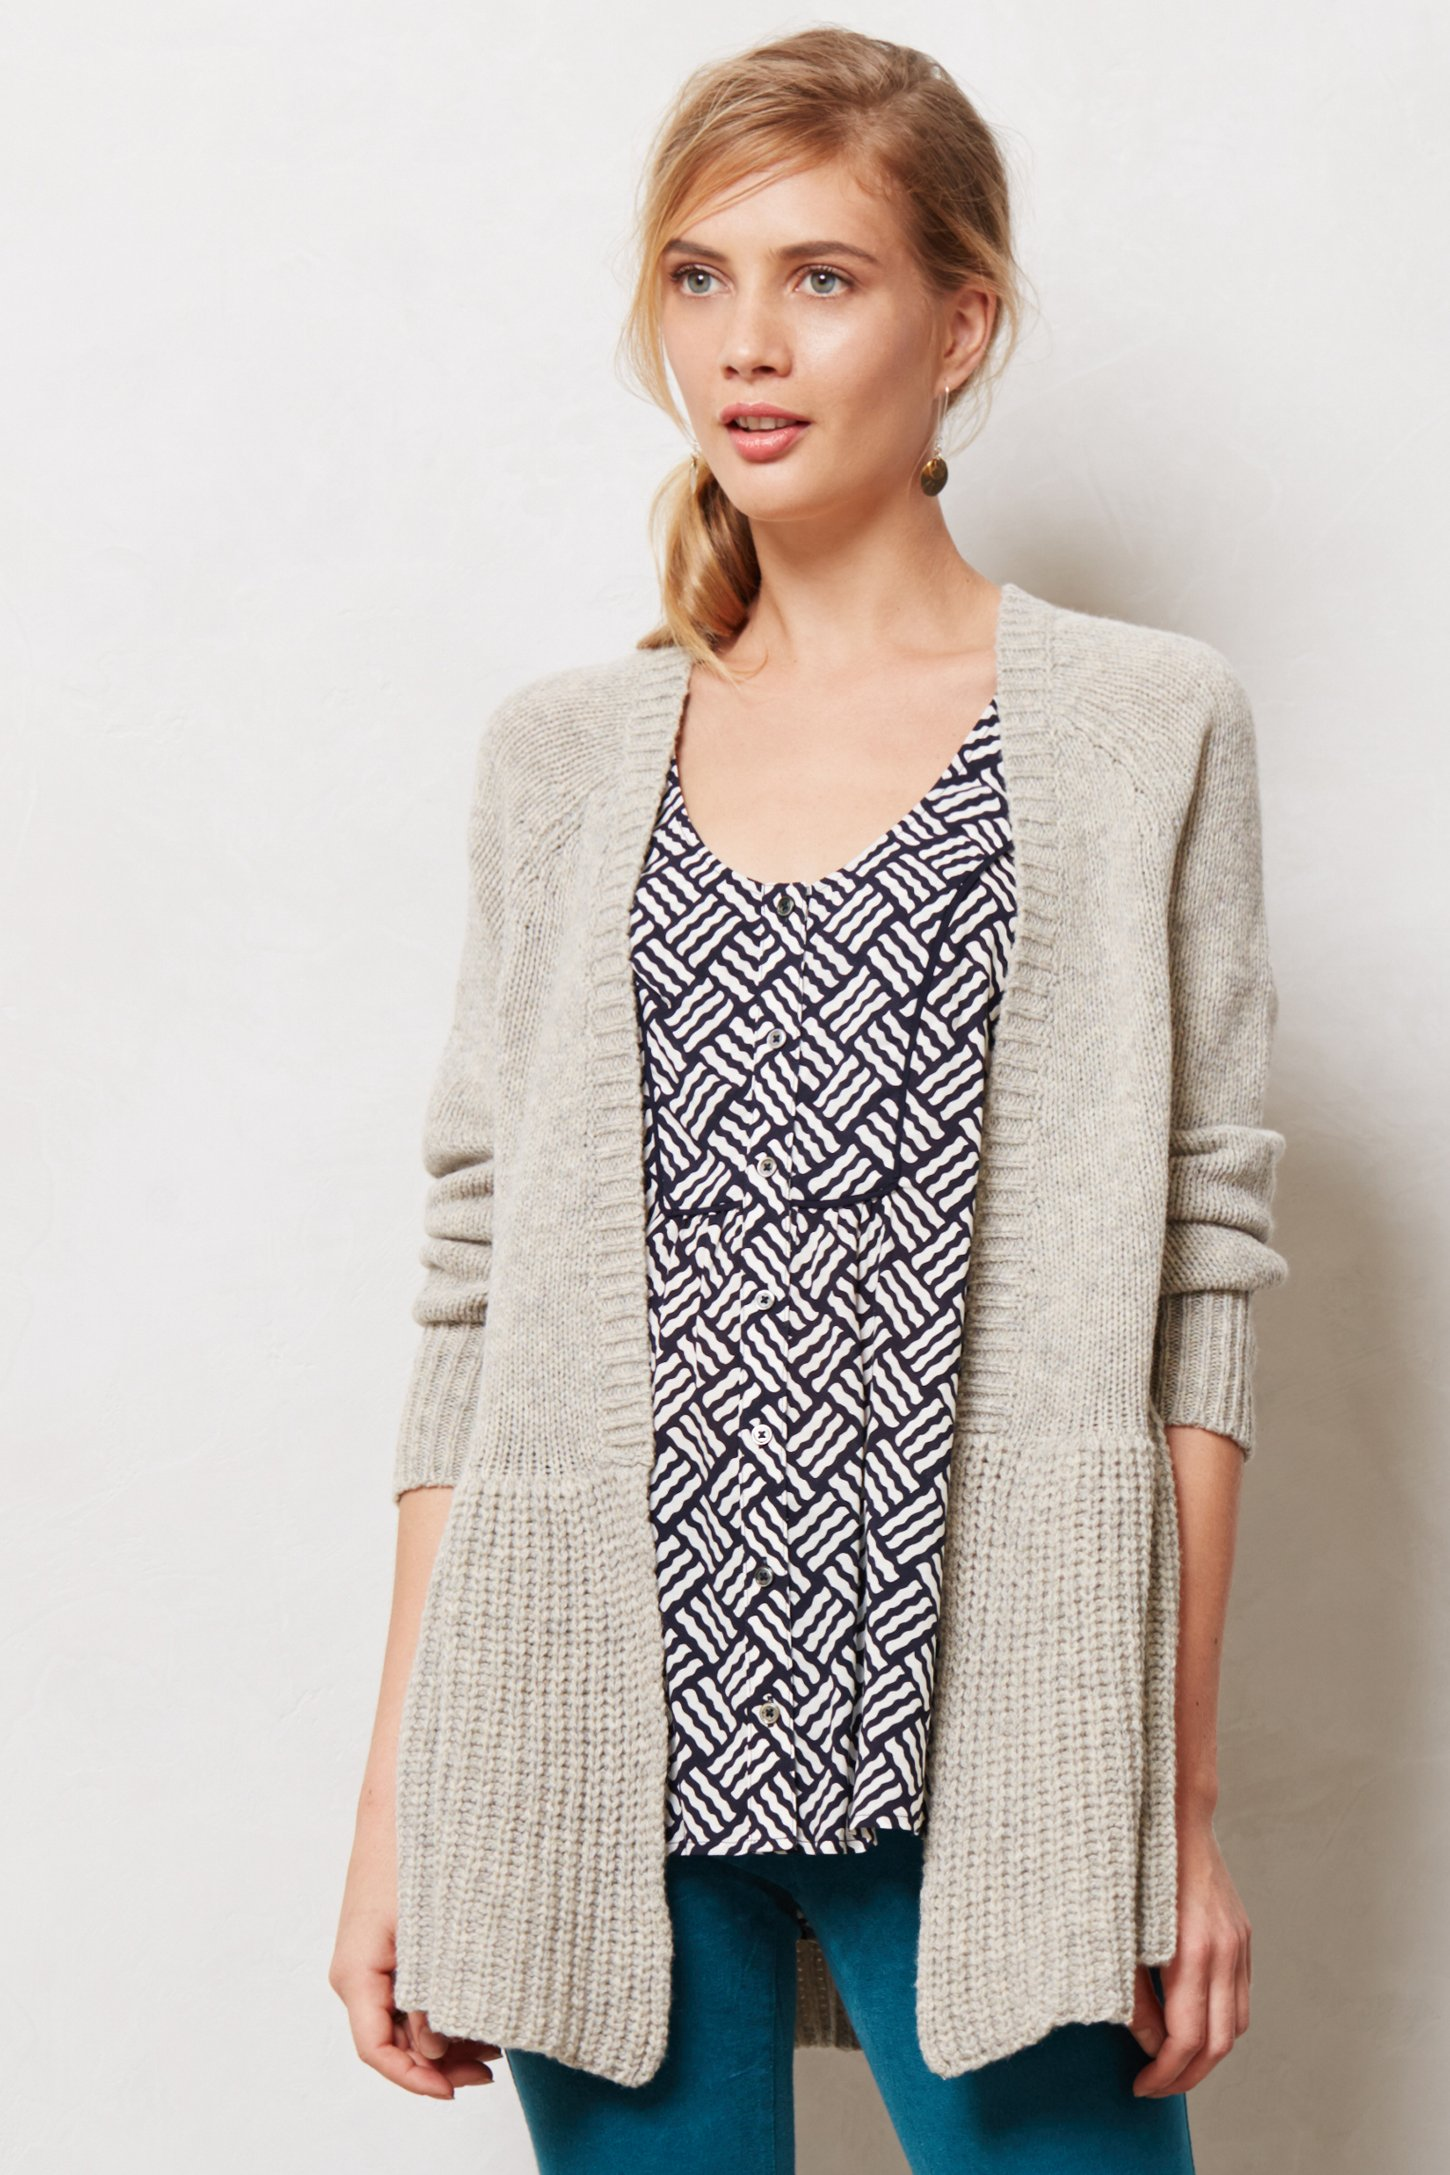 Knitted & knotted Stitchwise Swing Cardigan in Gray Lyst